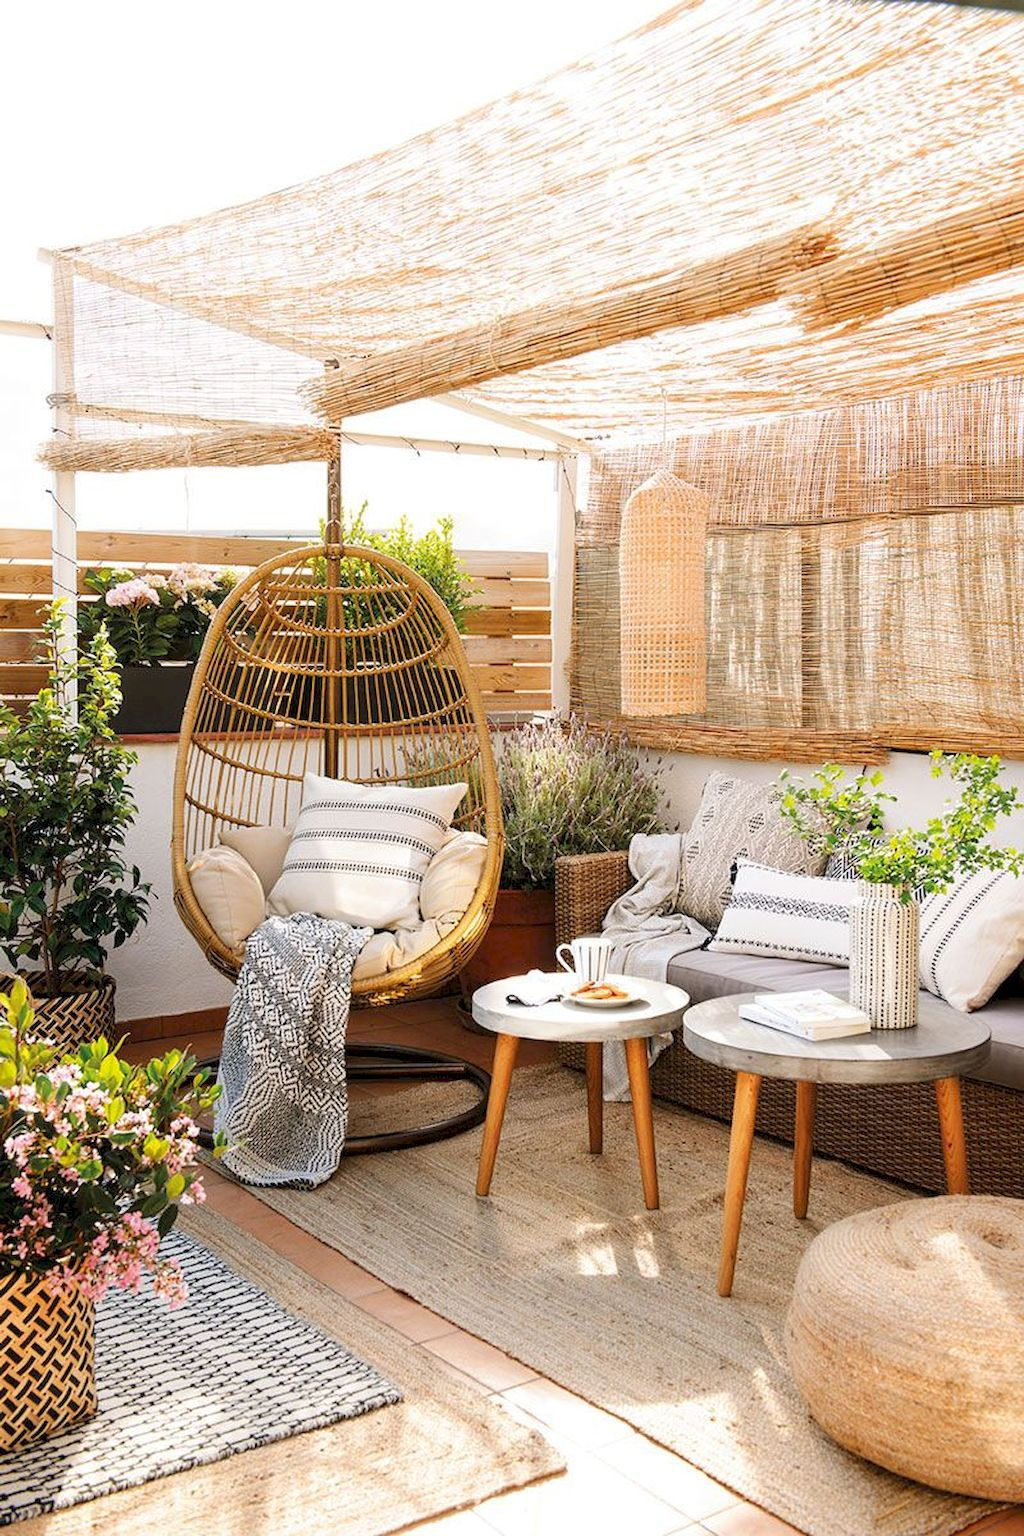 71 Wonderful Outdoor Patio Ideas Oneonroom Patio Design Patio Boho Patio